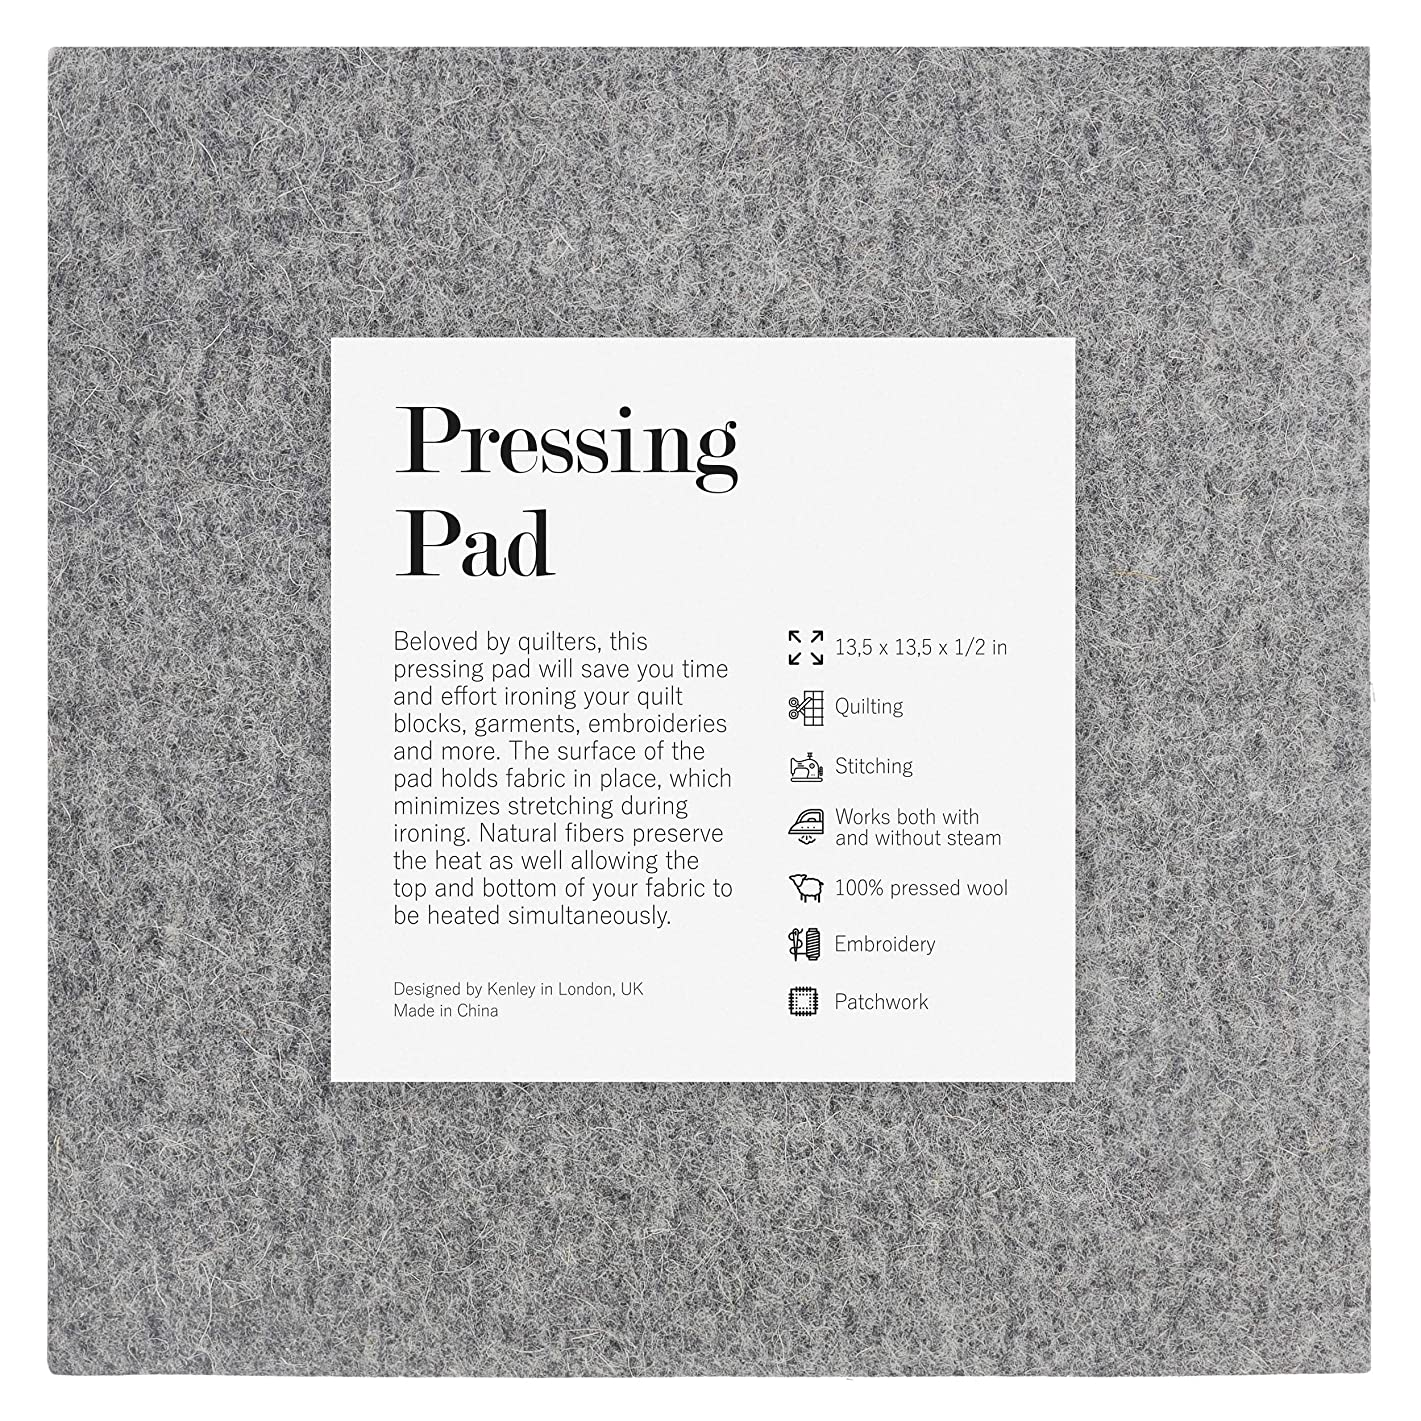 Kenley Wool Pressing Mat for Quilting - 13.5